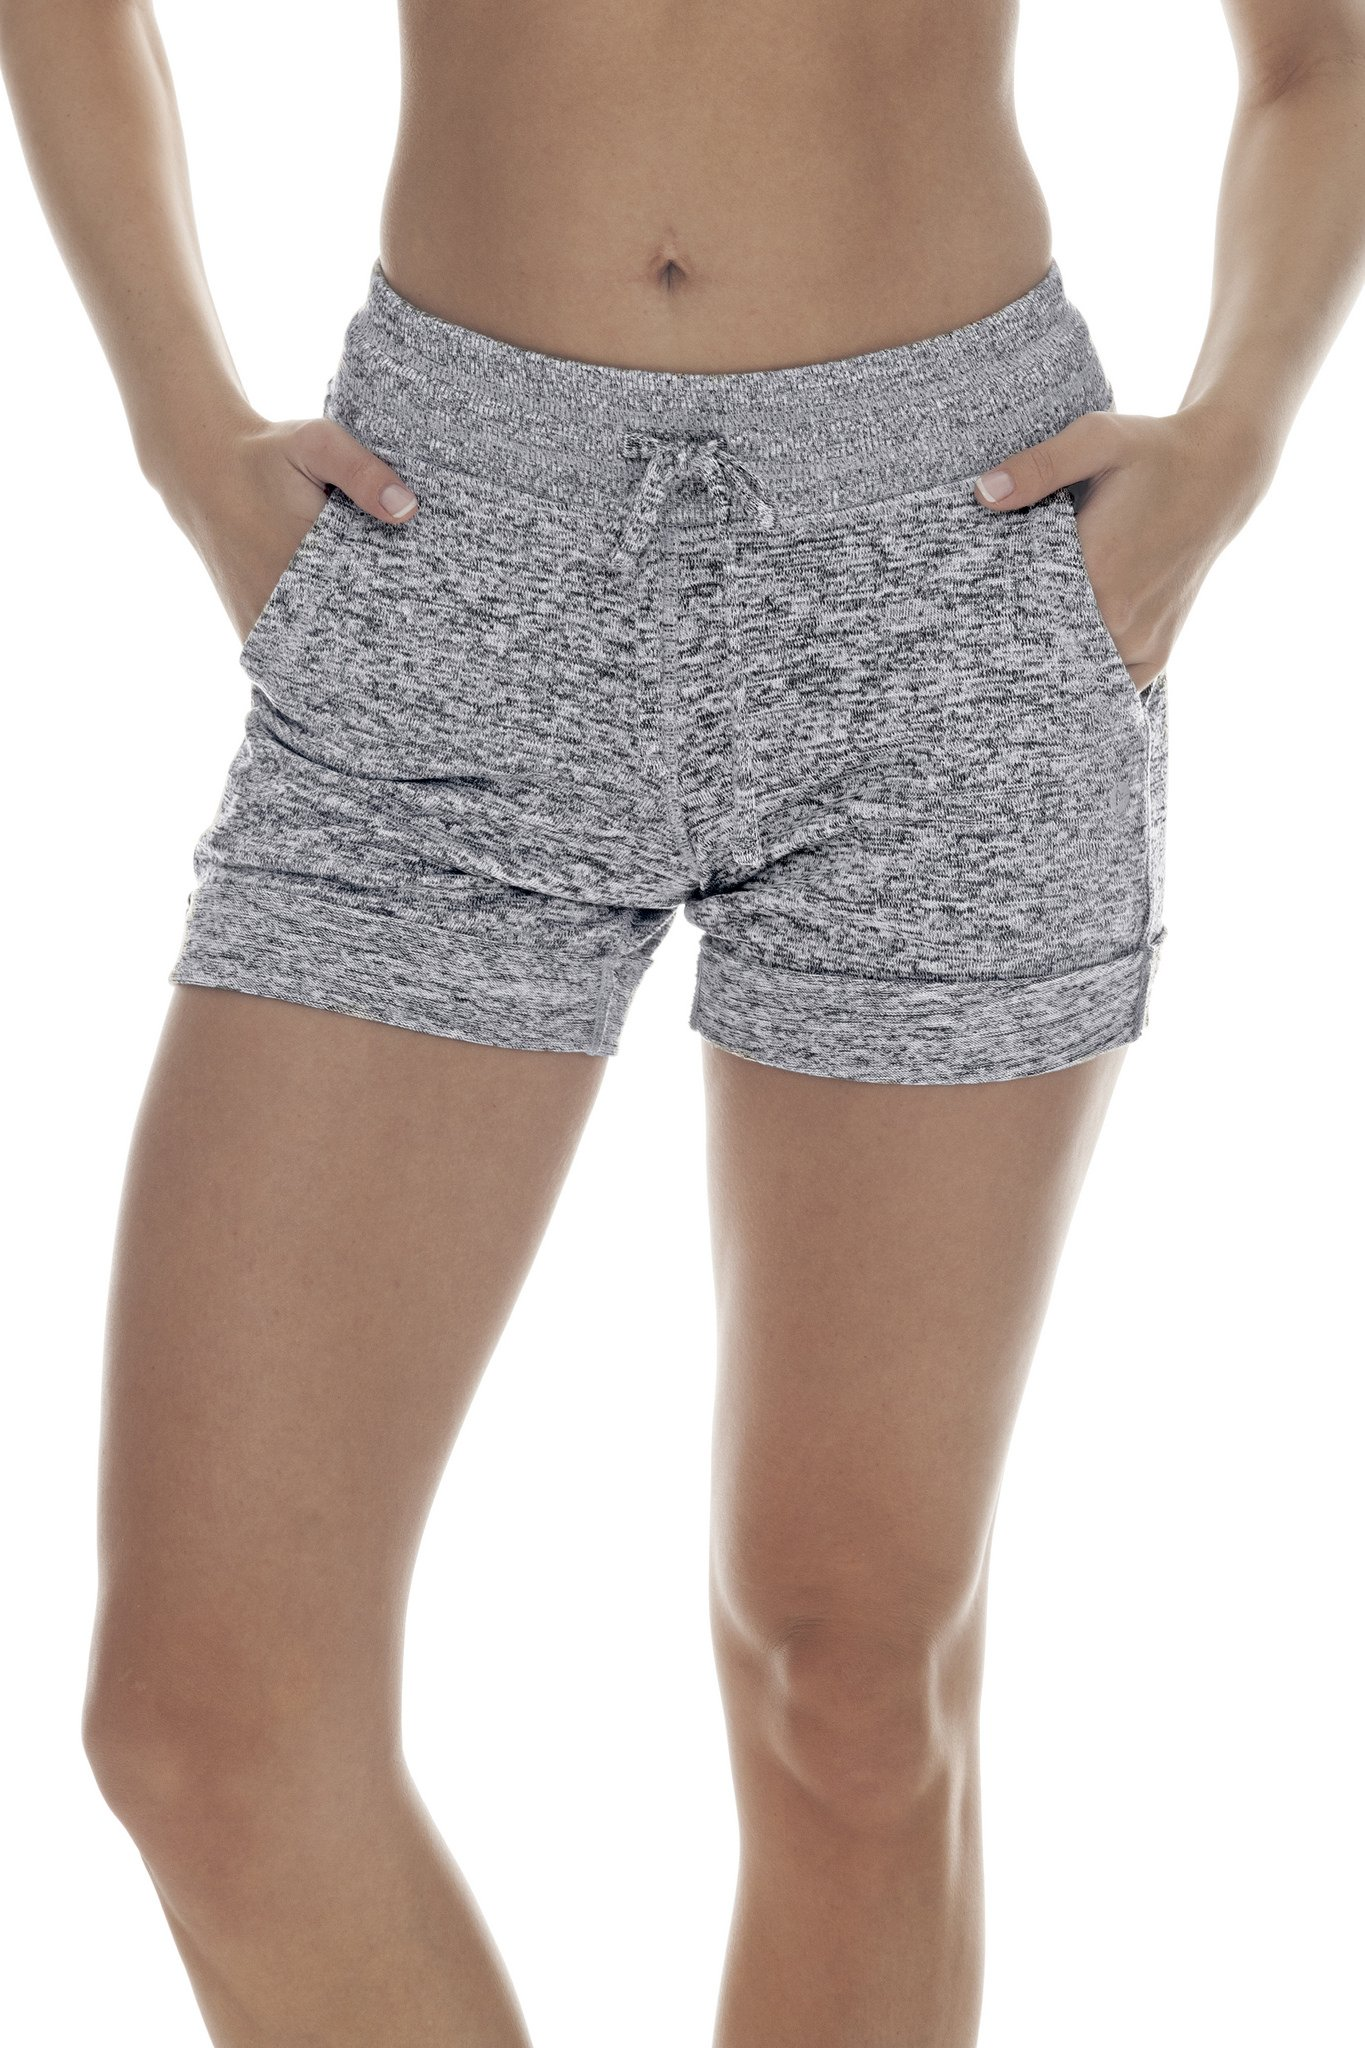 90 Degree By Reflex Activewear Lounge Shorts - Heather Grey Large